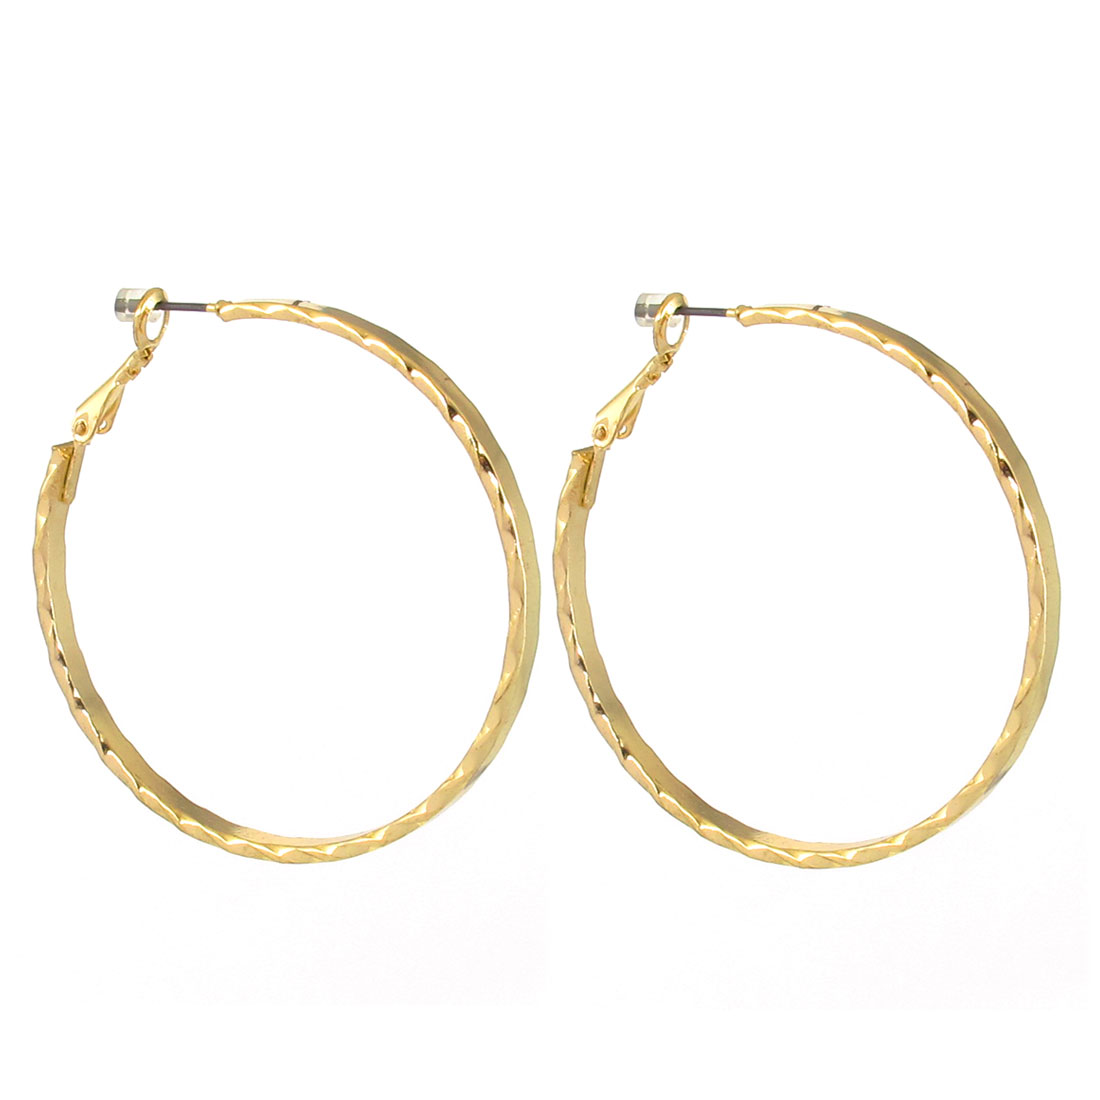 "2"" Dia Gold Tone Metal Stylish Textured Circle Hoop Pierced Earrings Pair for Lady Women"